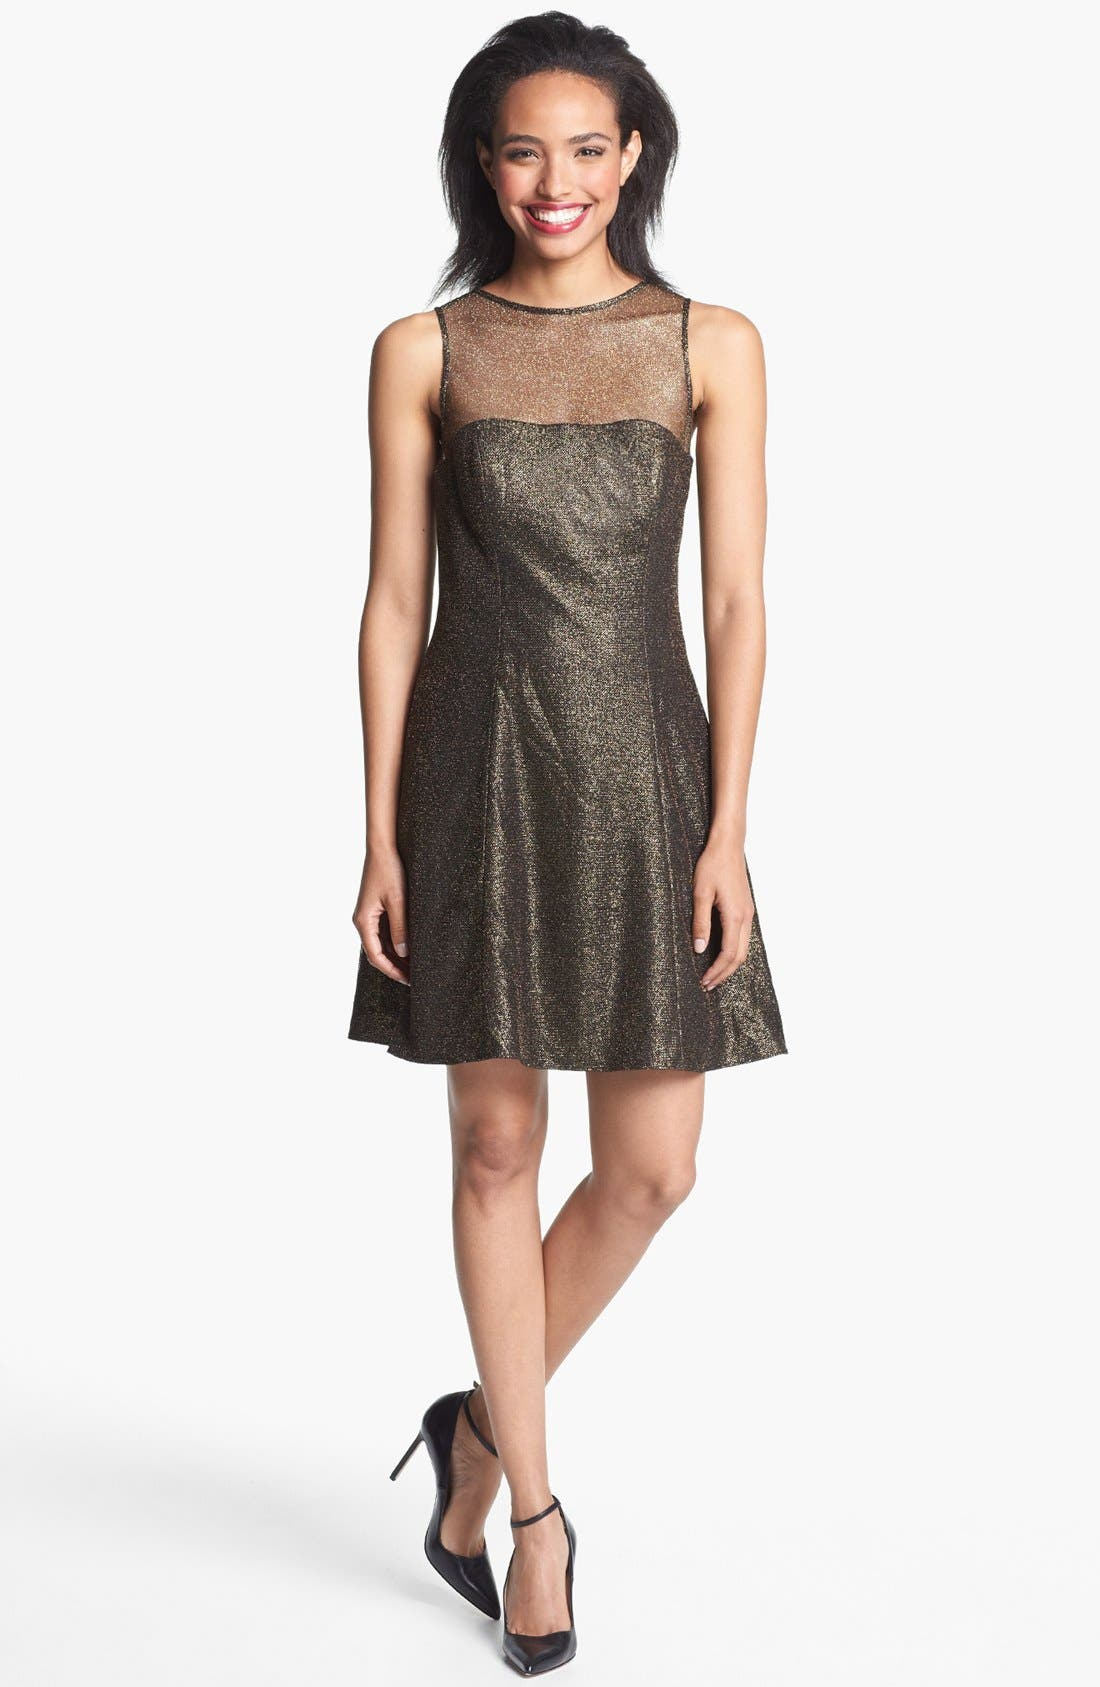 Main Image - Aidan by Aidan Mattox Metallic Skater Dress